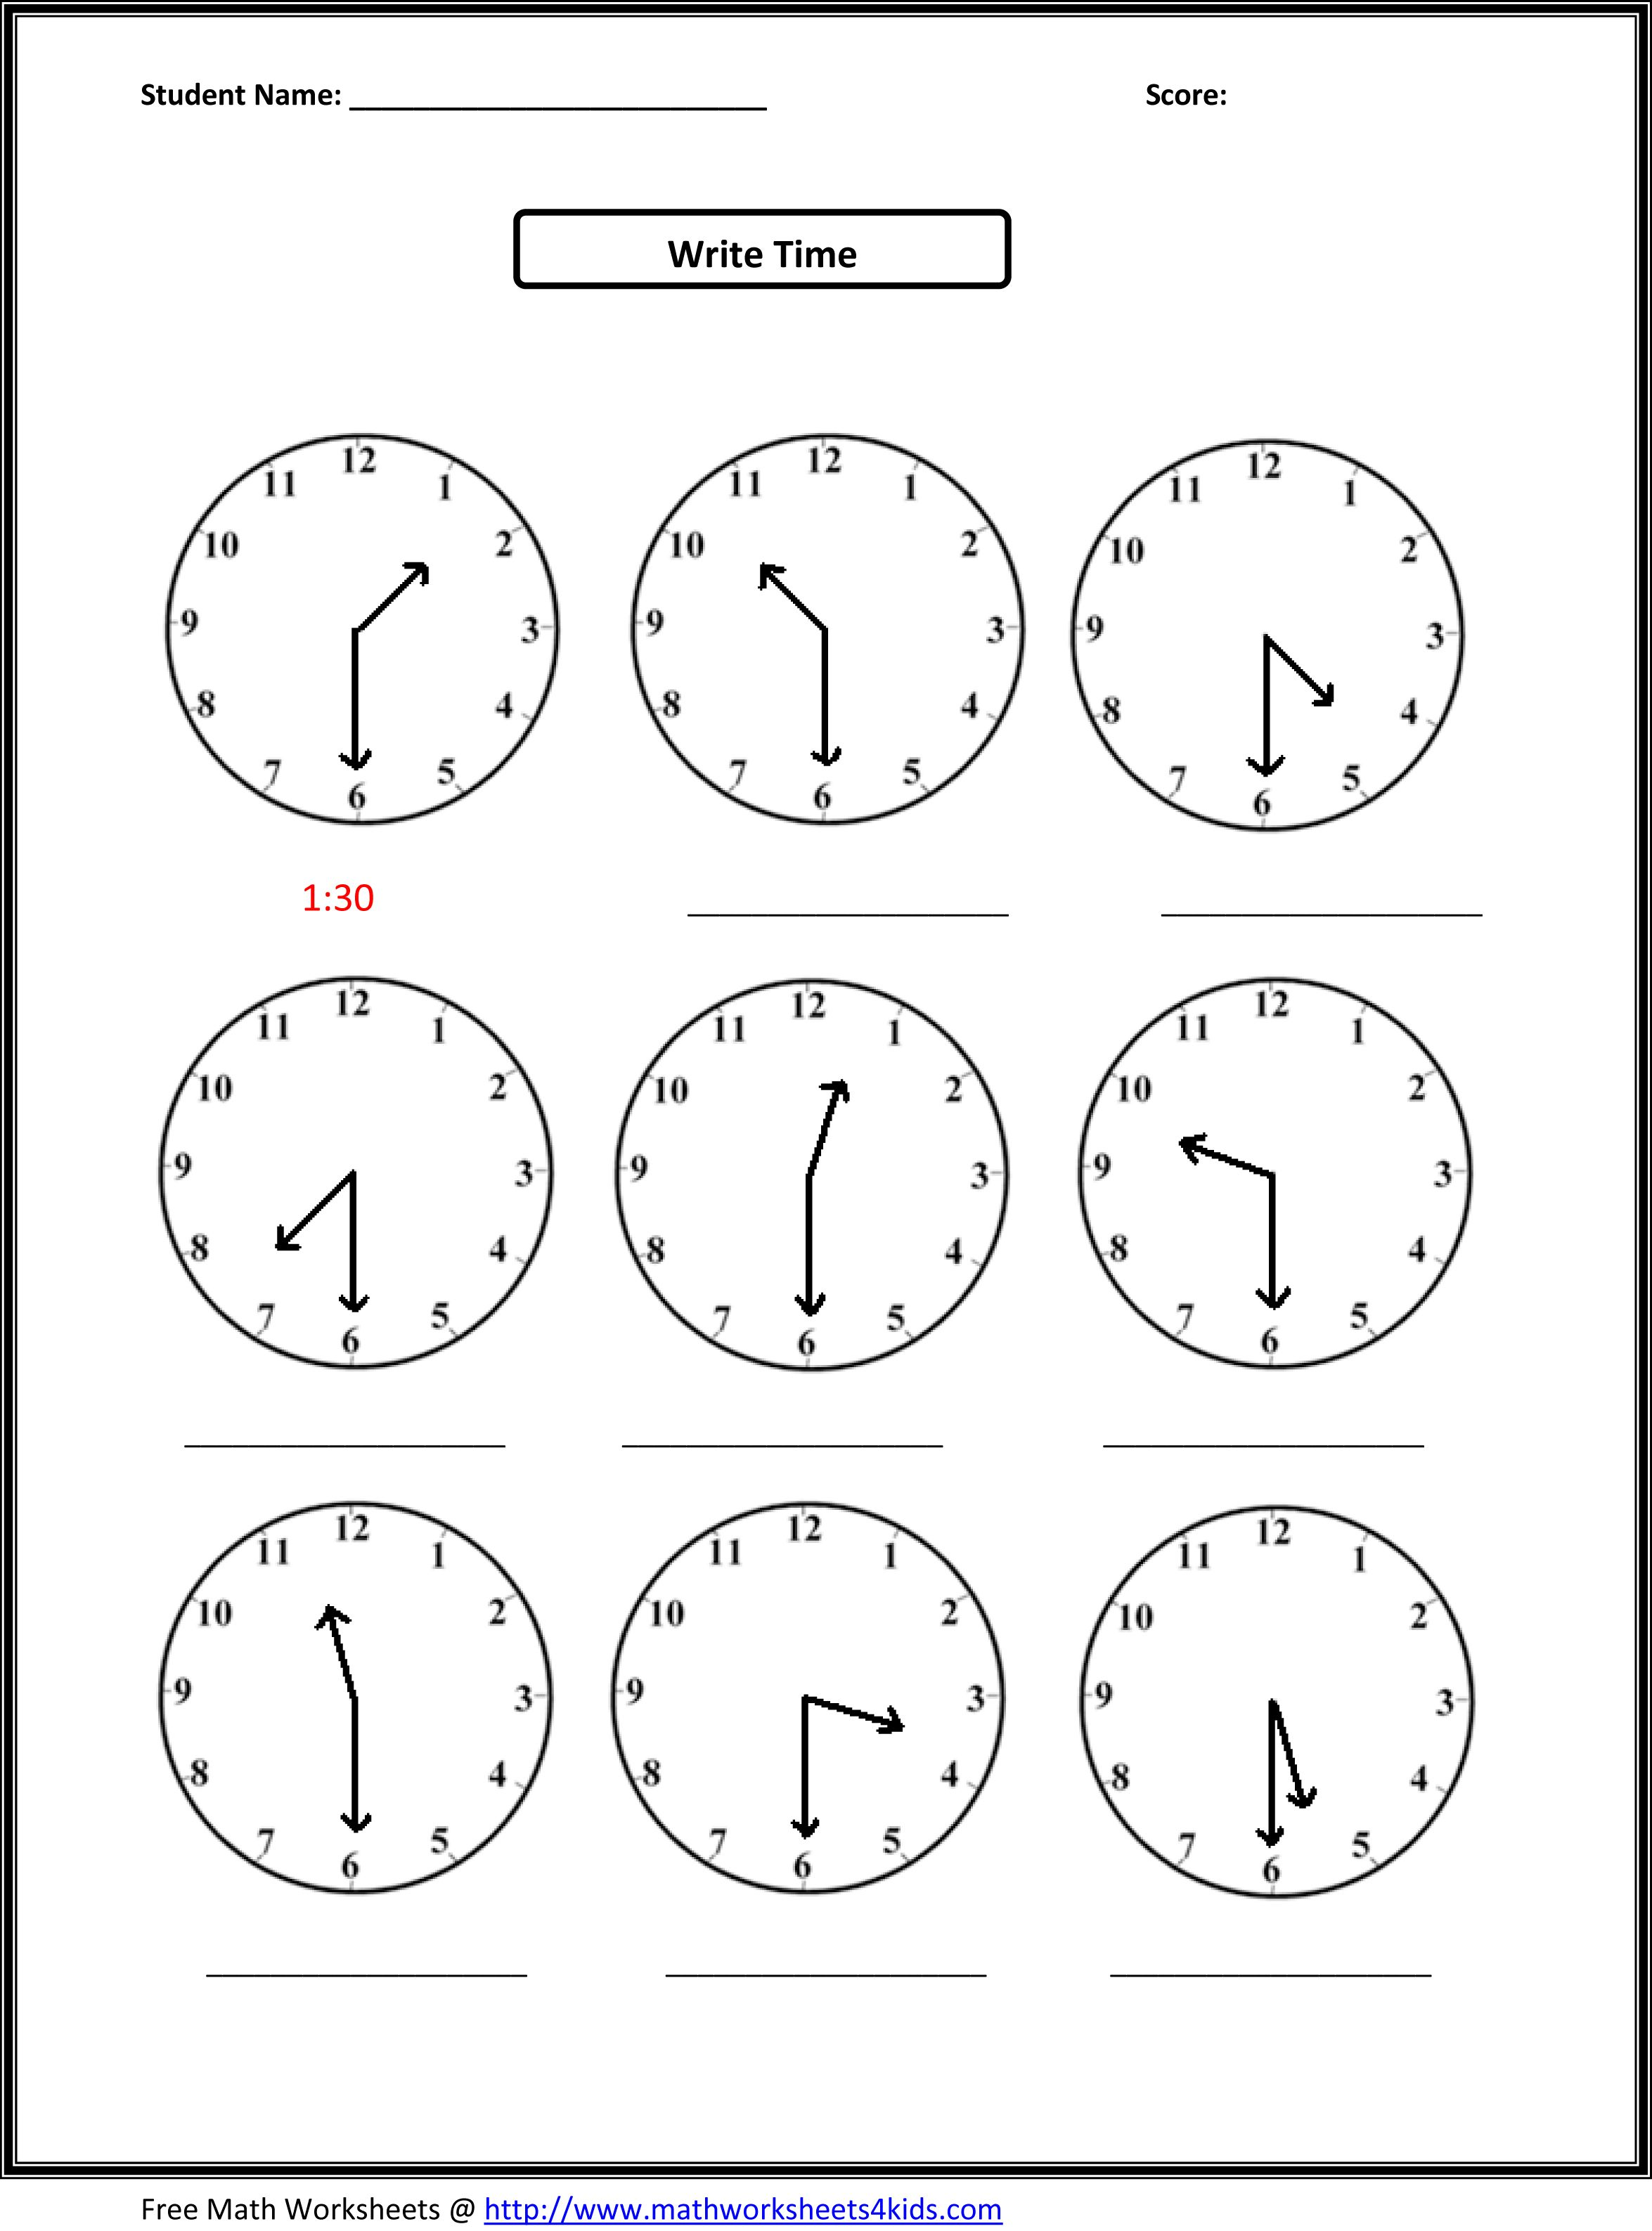 Proatmealus  Surprising Worksheet On Time For Grade   Reocurent With Remarkable Free Printable Telling Time Worksheets Nd Grade  Reocurent With Enchanting Physical And Chemical Change Worksheets Also Shape Poem Worksheet In Addition Dictionary Worksheets For Nd Grade And Edhelper Free Worksheets As Well As Worksheets Kids Additionally Means Of Transport Worksheets From Reocurentcom With Proatmealus  Remarkable Worksheet On Time For Grade   Reocurent With Enchanting Free Printable Telling Time Worksheets Nd Grade  Reocurent And Surprising Physical And Chemical Change Worksheets Also Shape Poem Worksheet In Addition Dictionary Worksheets For Nd Grade From Reocurentcom